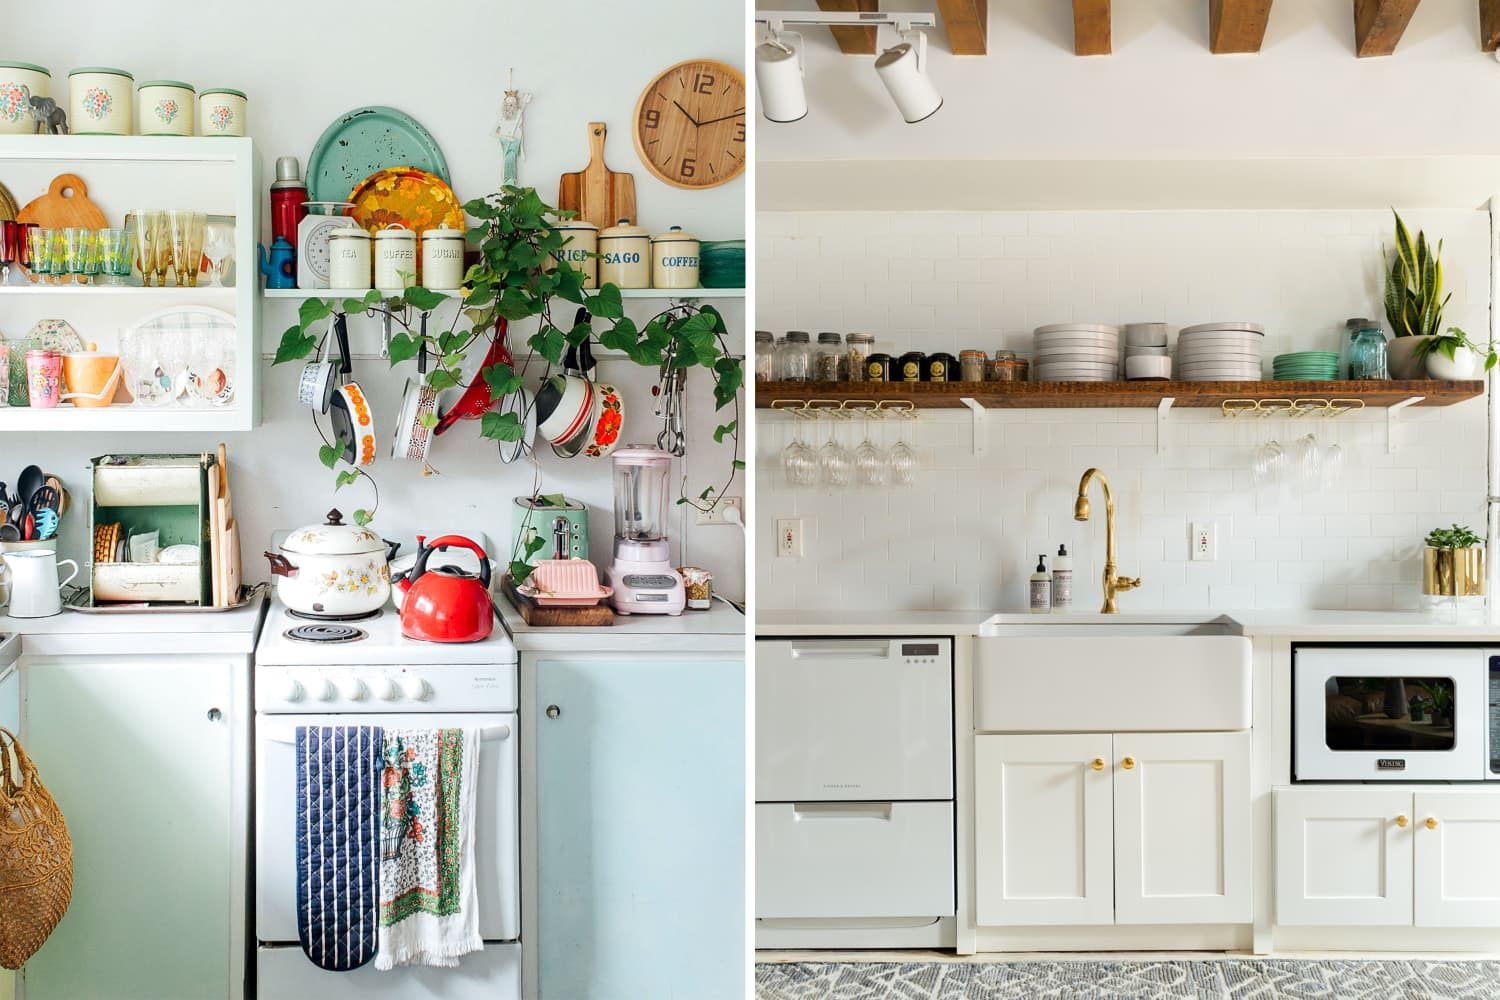 20 of the Most Popular Kitchens of All Time from Our Friends at Apartment Therapy